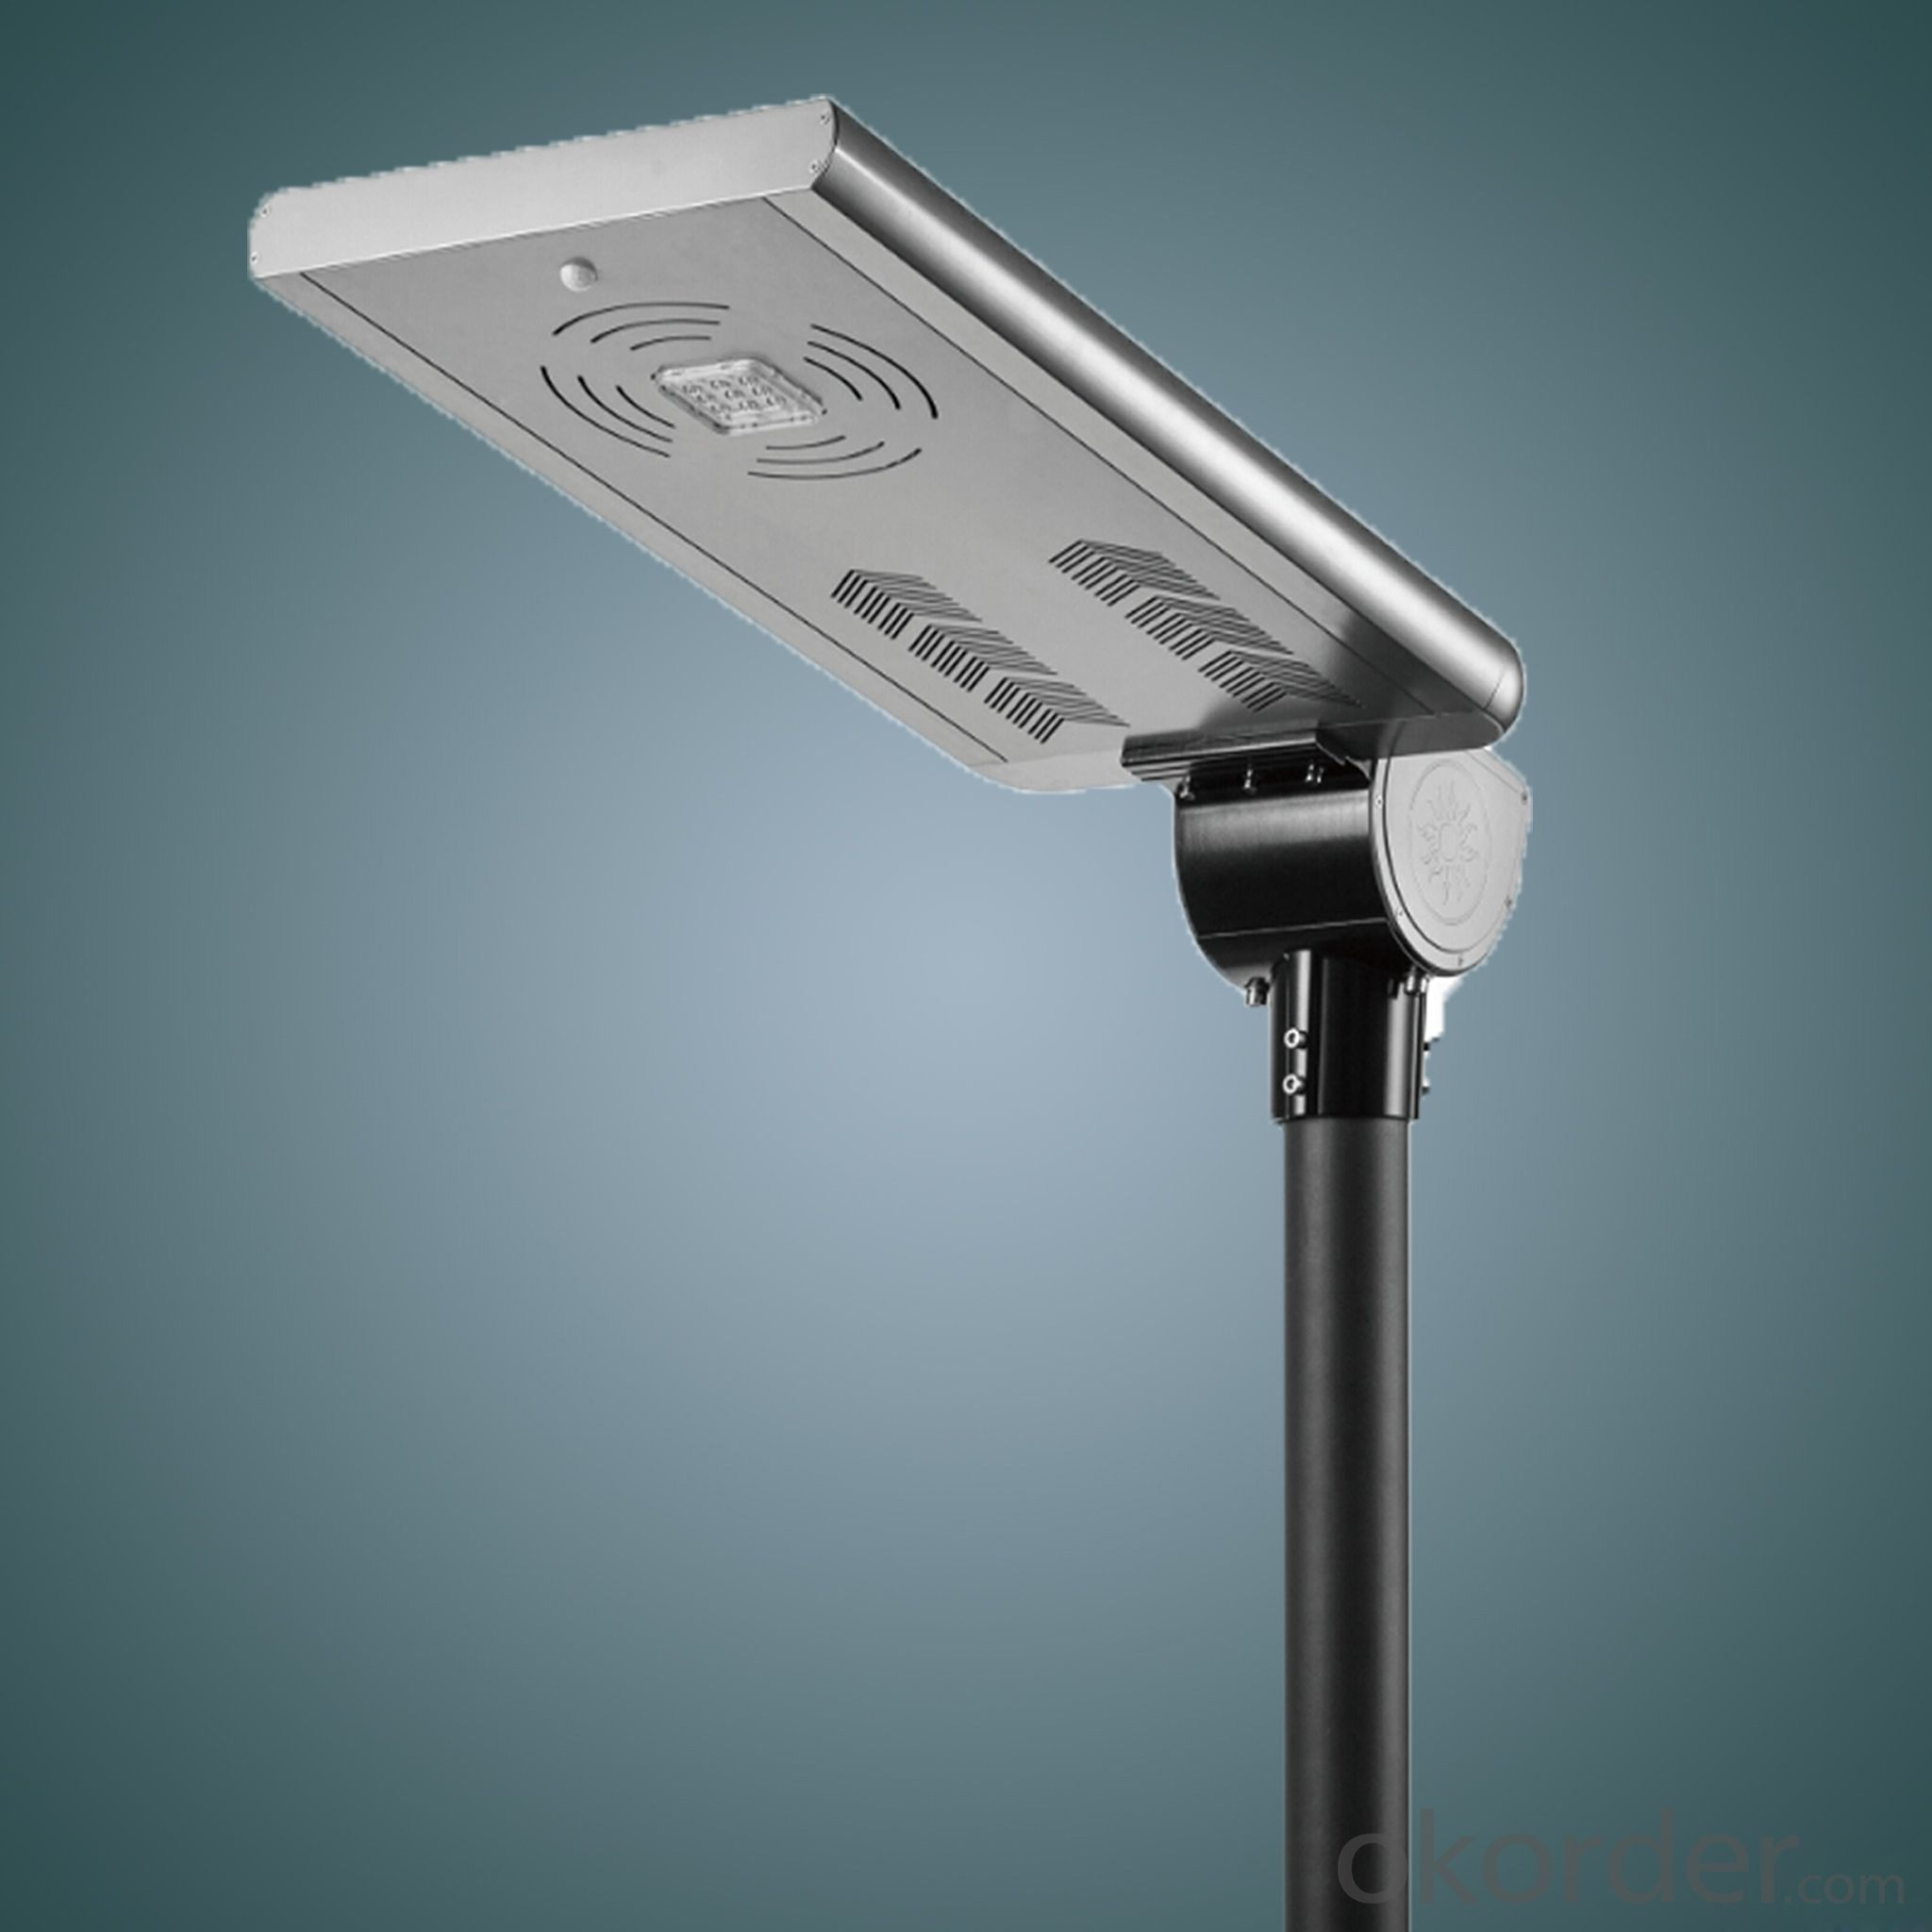 Buy All In One Solar Powered Street Light With Motion